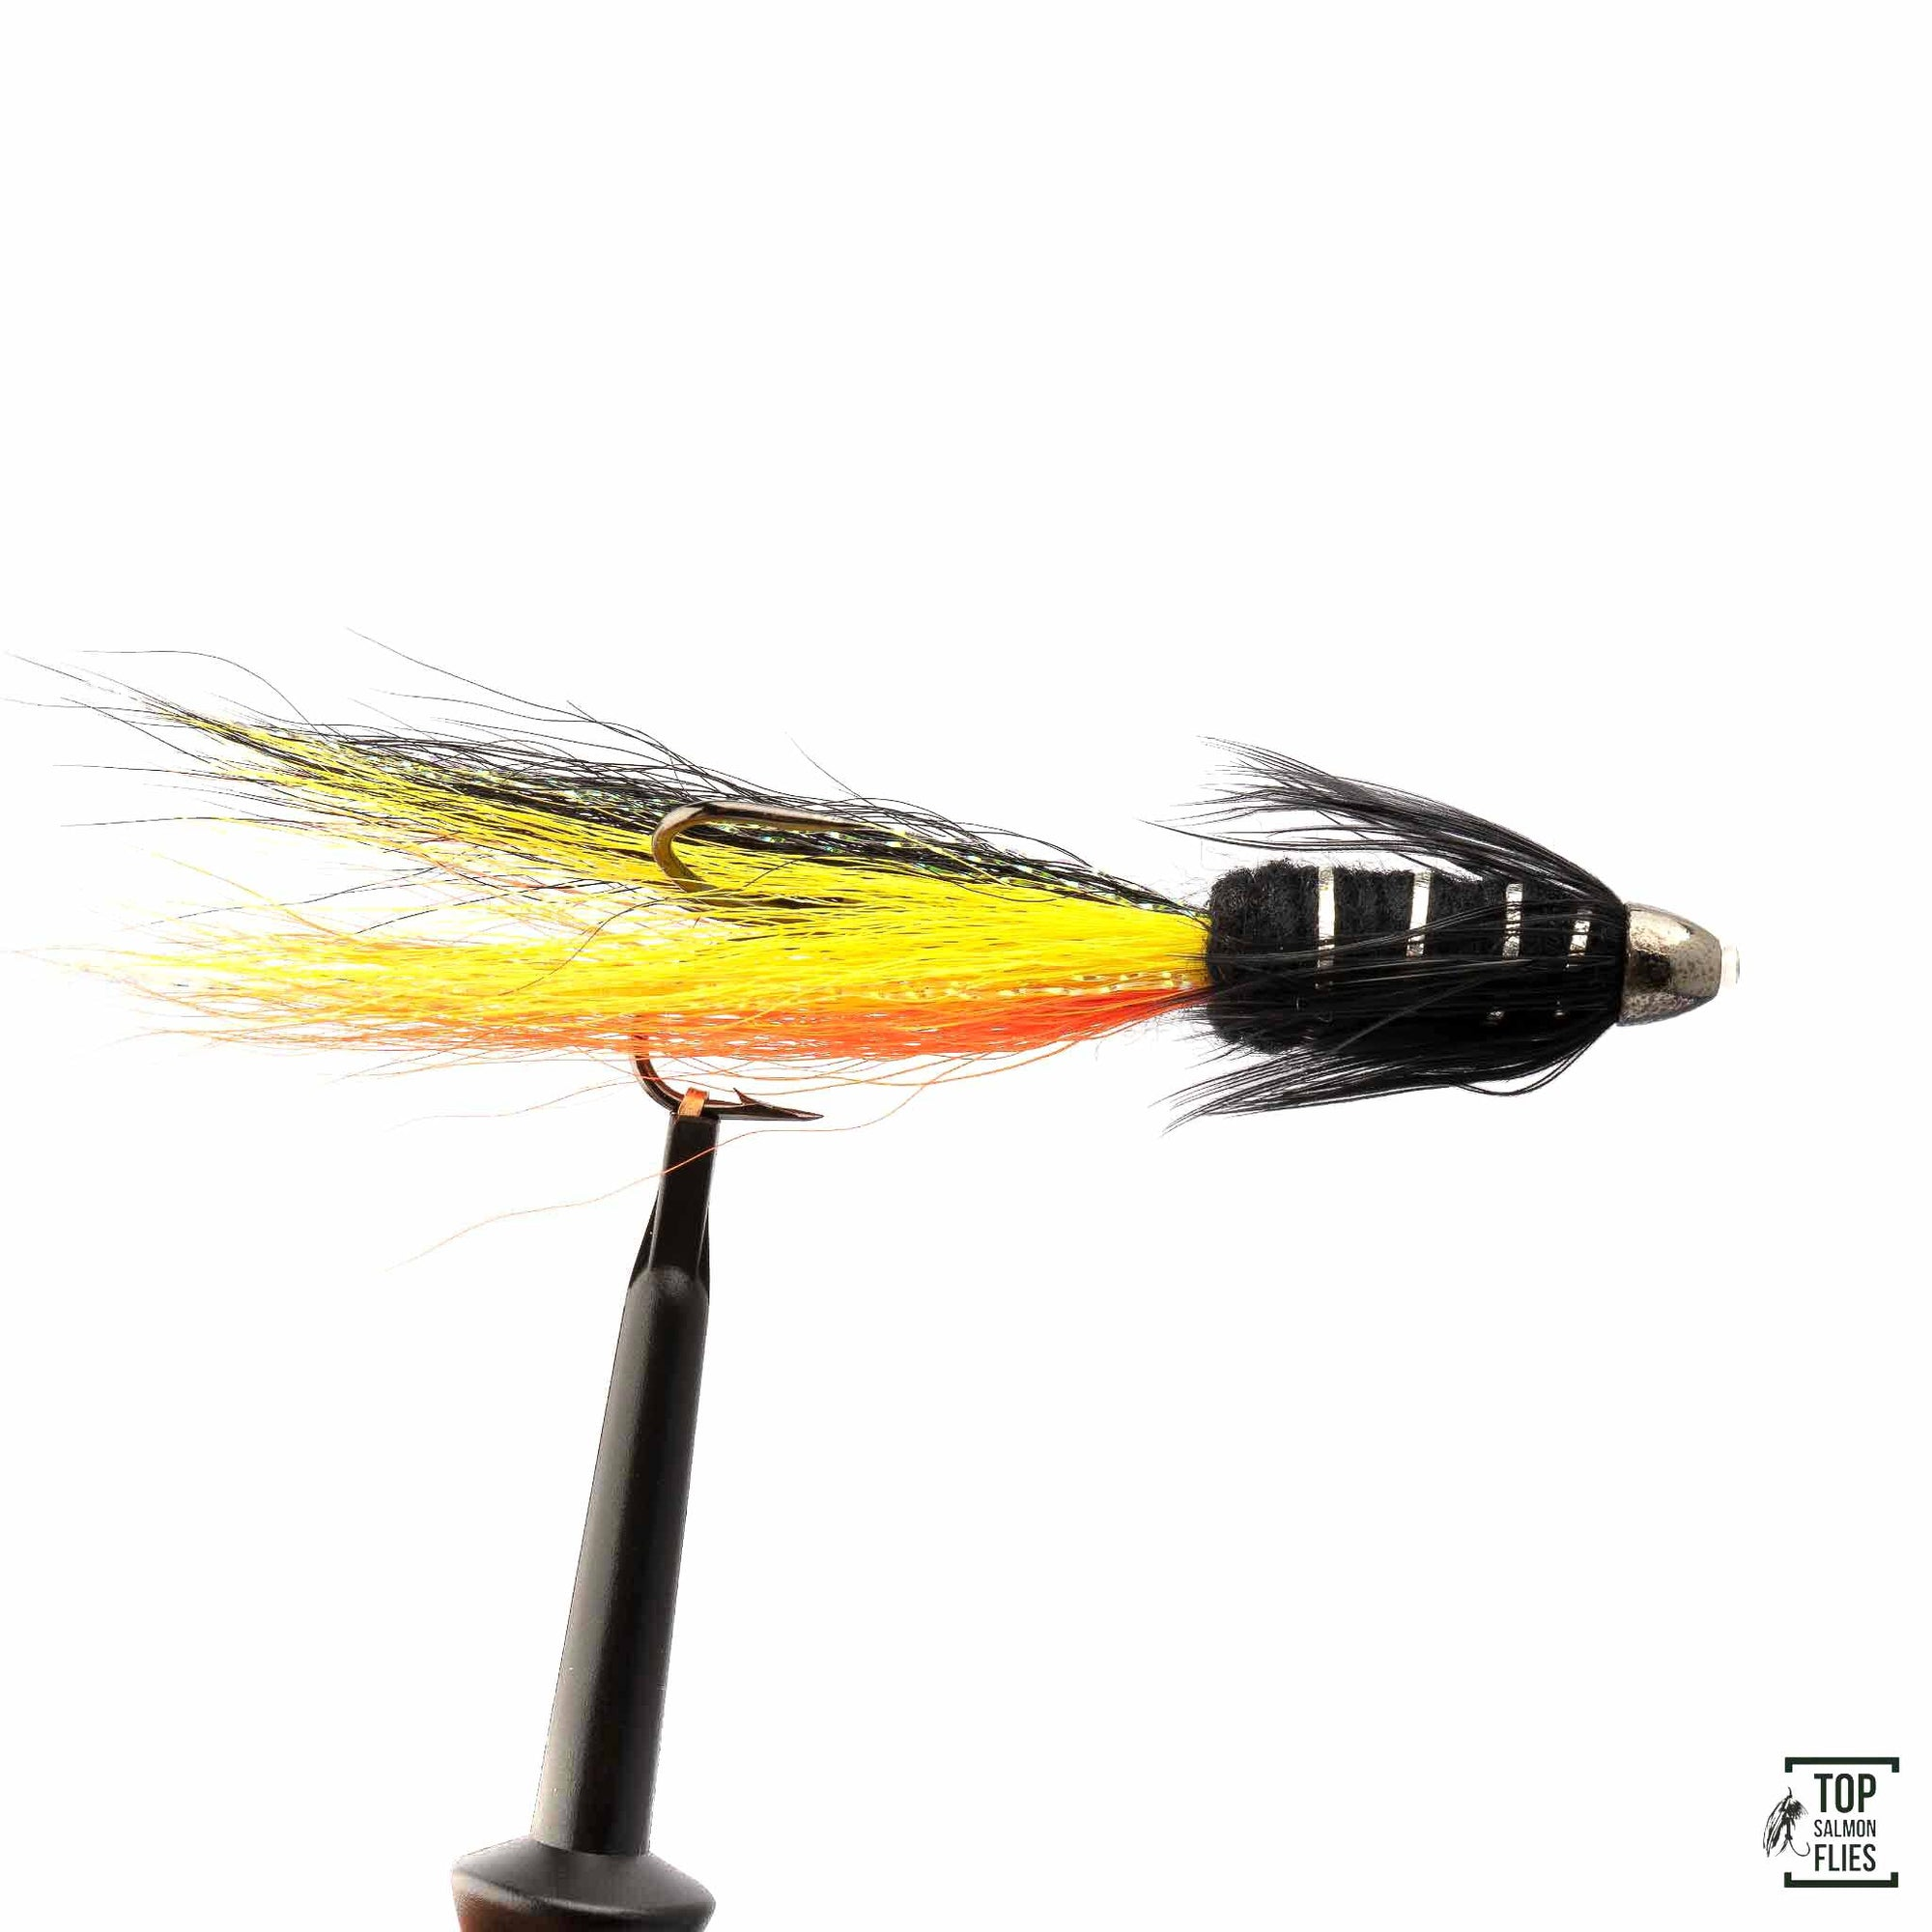 Snaelda-Yellow/Orange/Black Tungsten Conehead